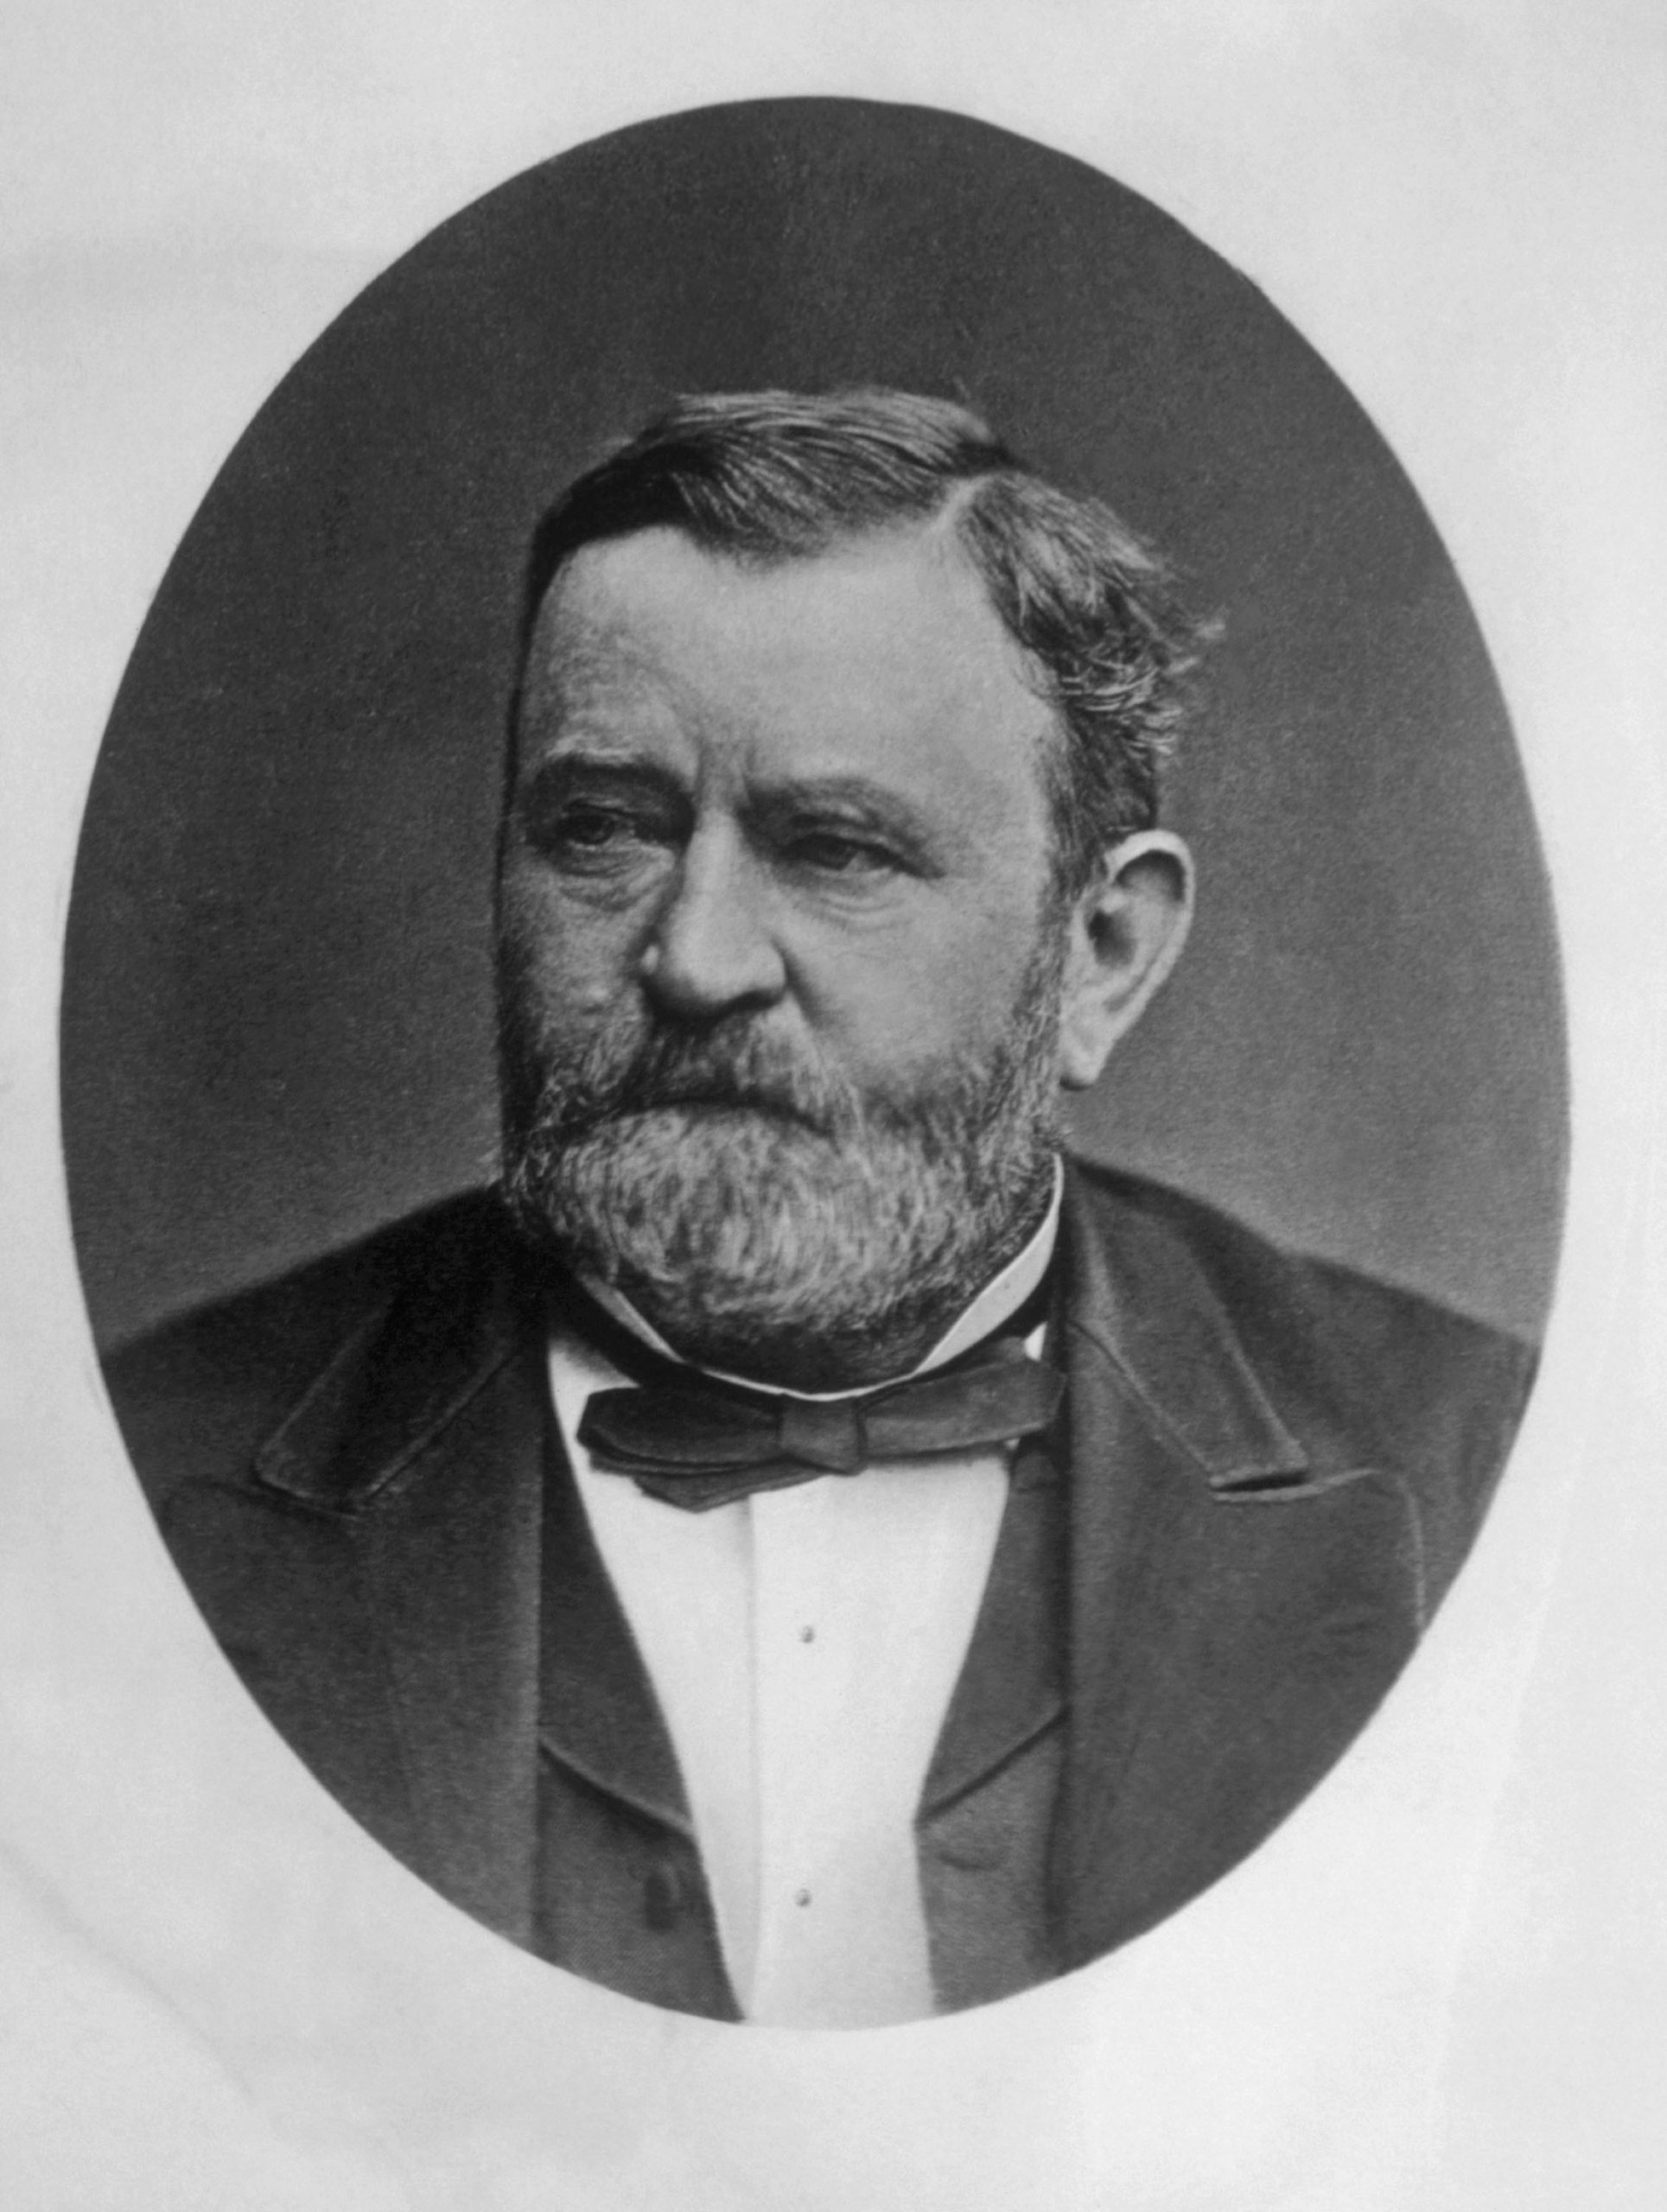 In 1865, as commanding general, he led the Union Armies to victory over the Confederacy in the American Civil War. As an American hero, he was later elected the 18th President of the United States (1869–1877), working to implement Congressional Reconstruction and to remove the vestiges of slavery.